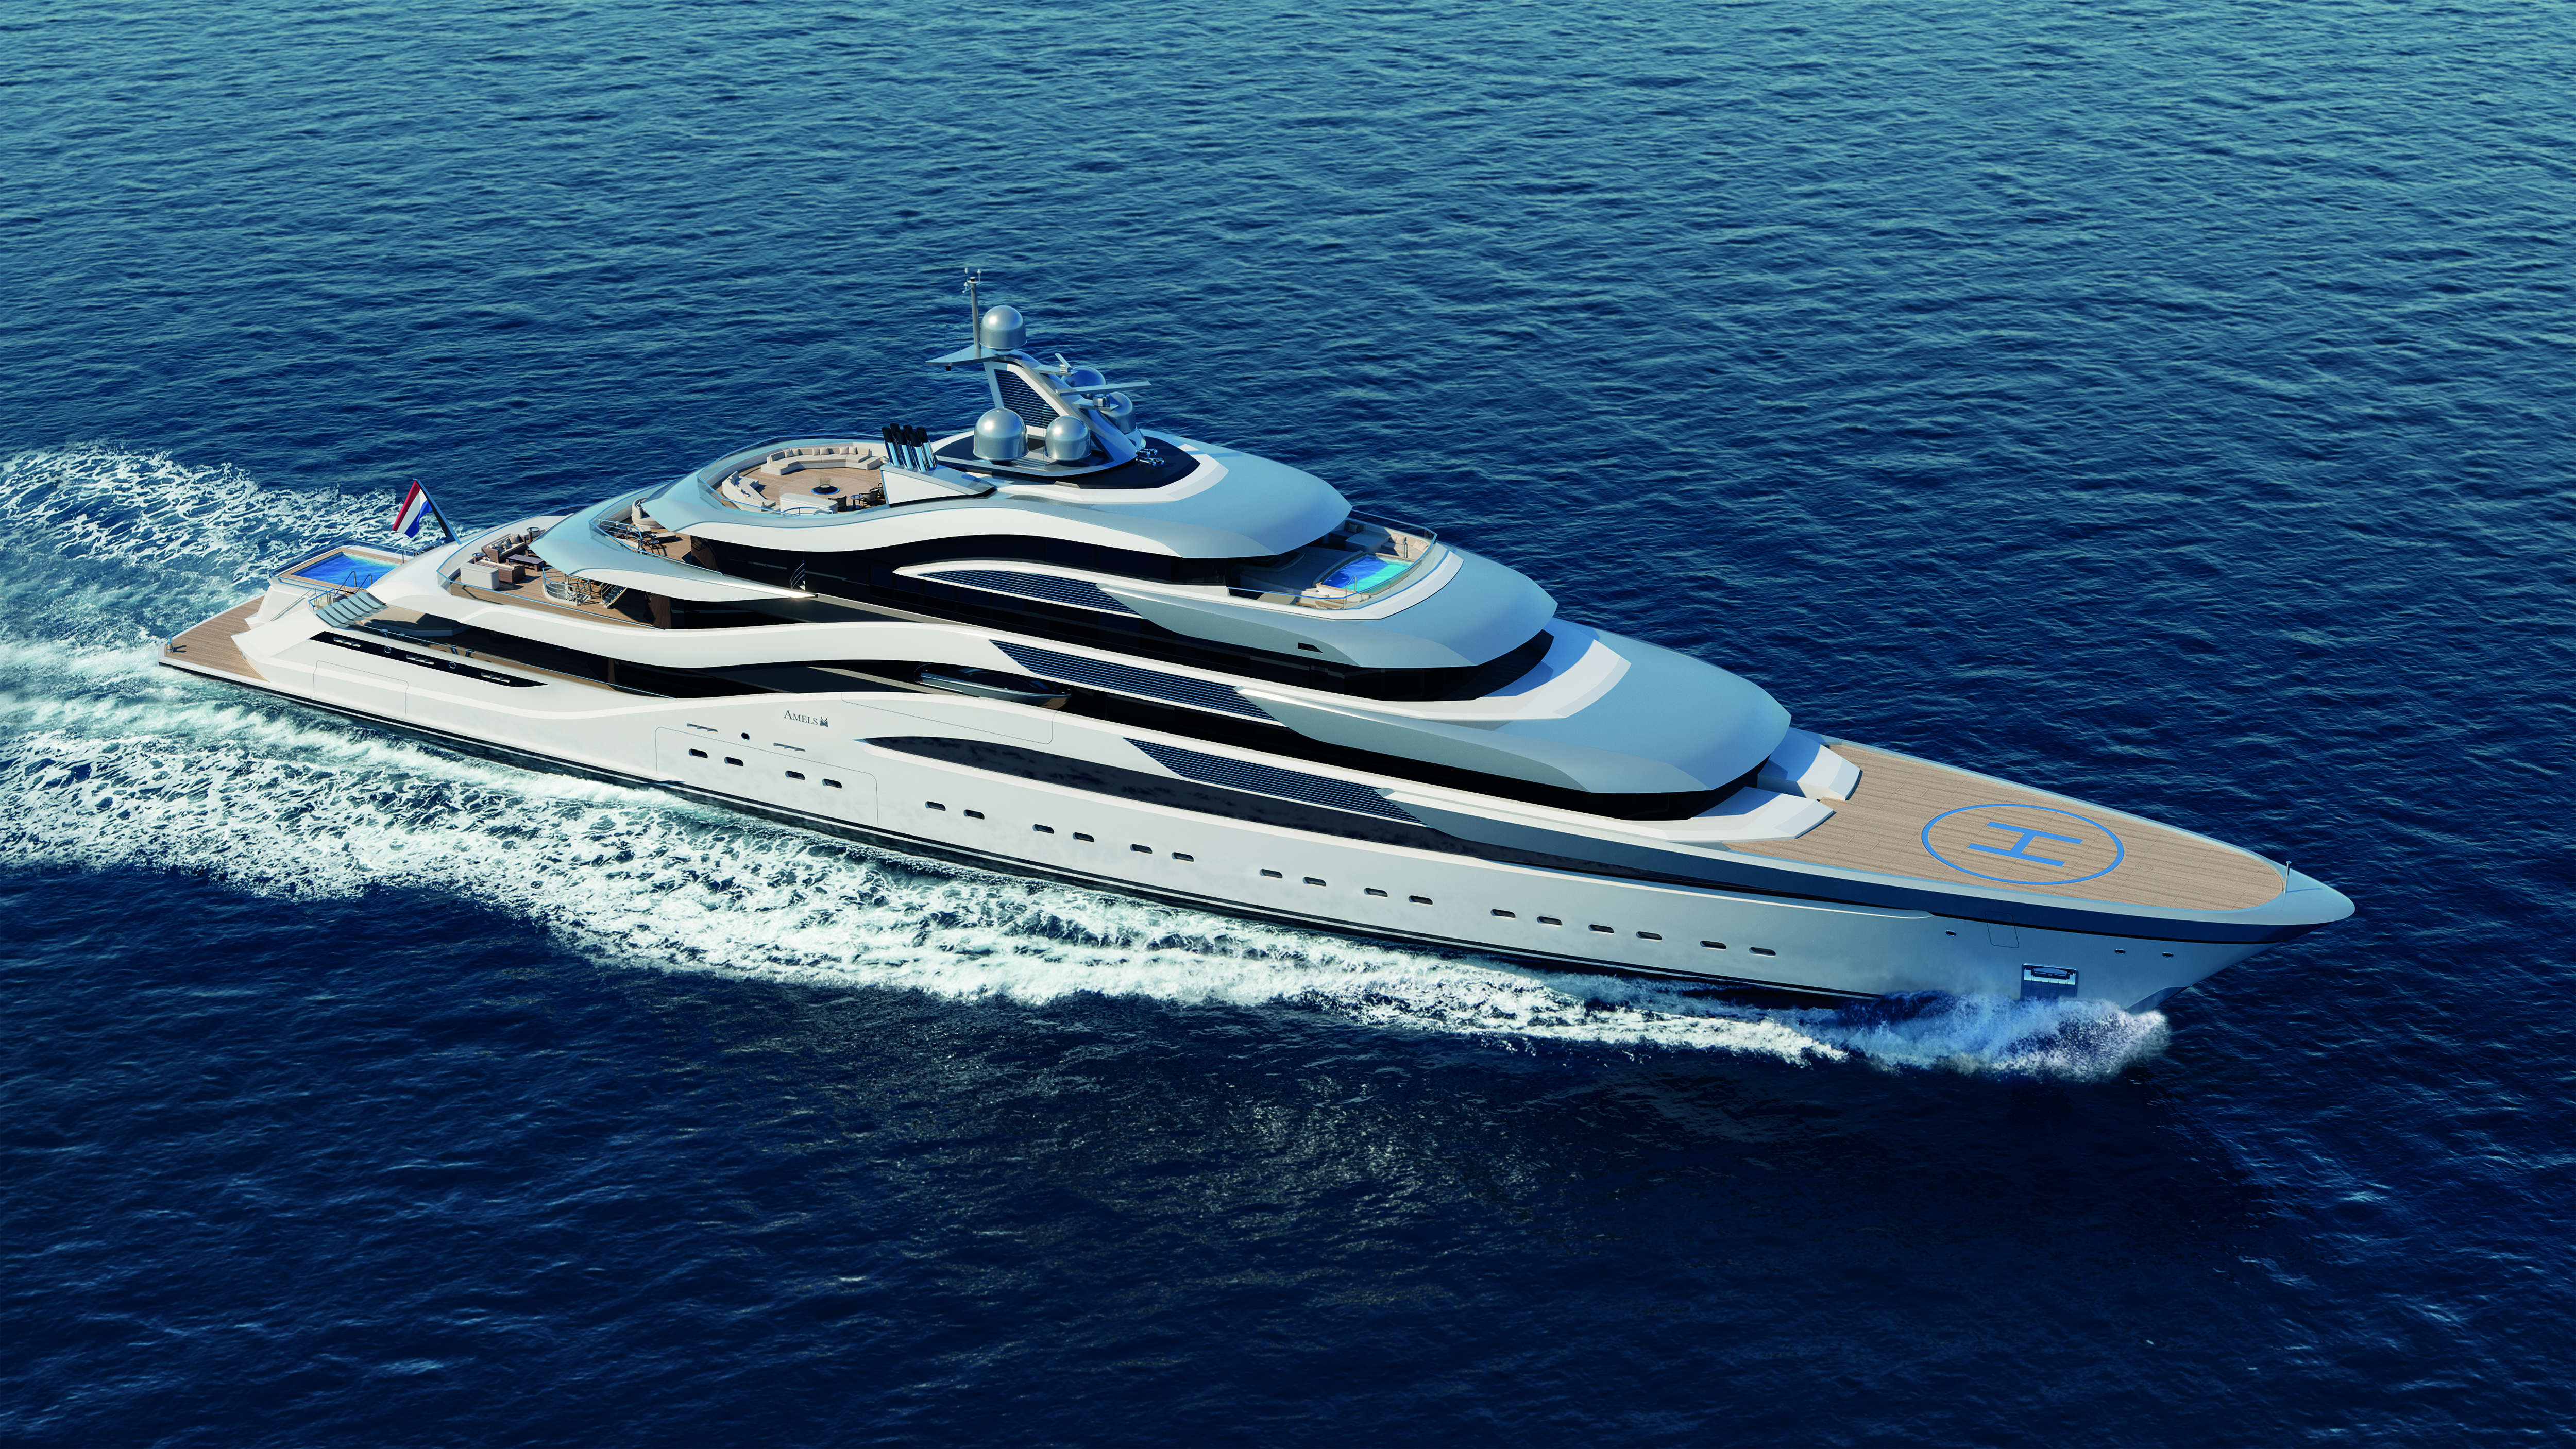 POLLUX specs with detailed specification and builder summary